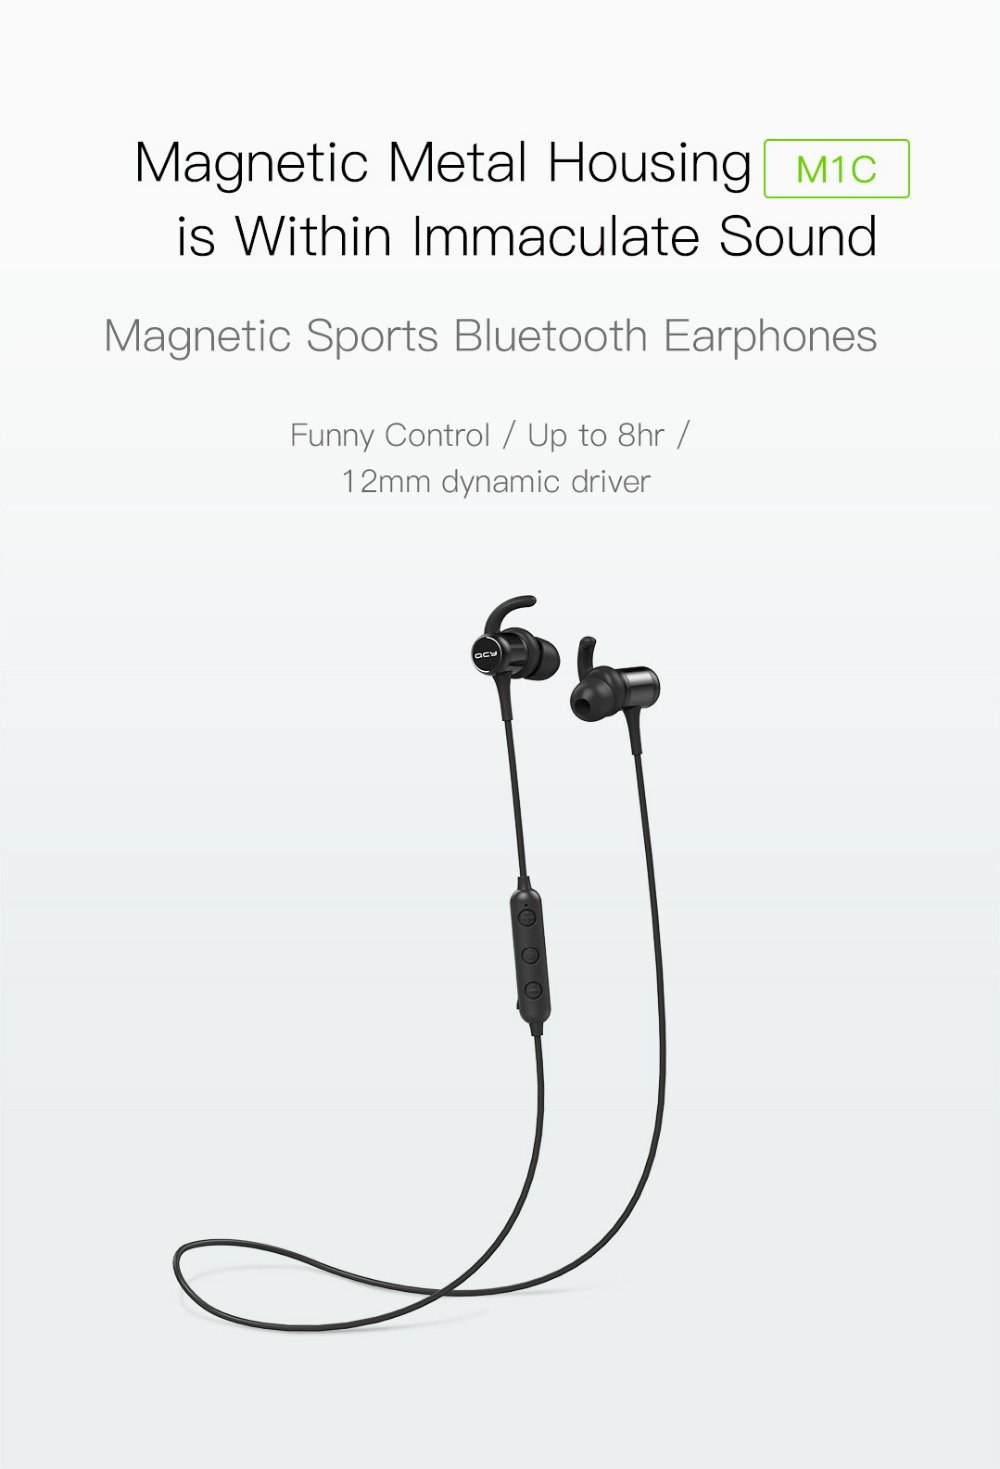 qcy m1c bluetooth earphones